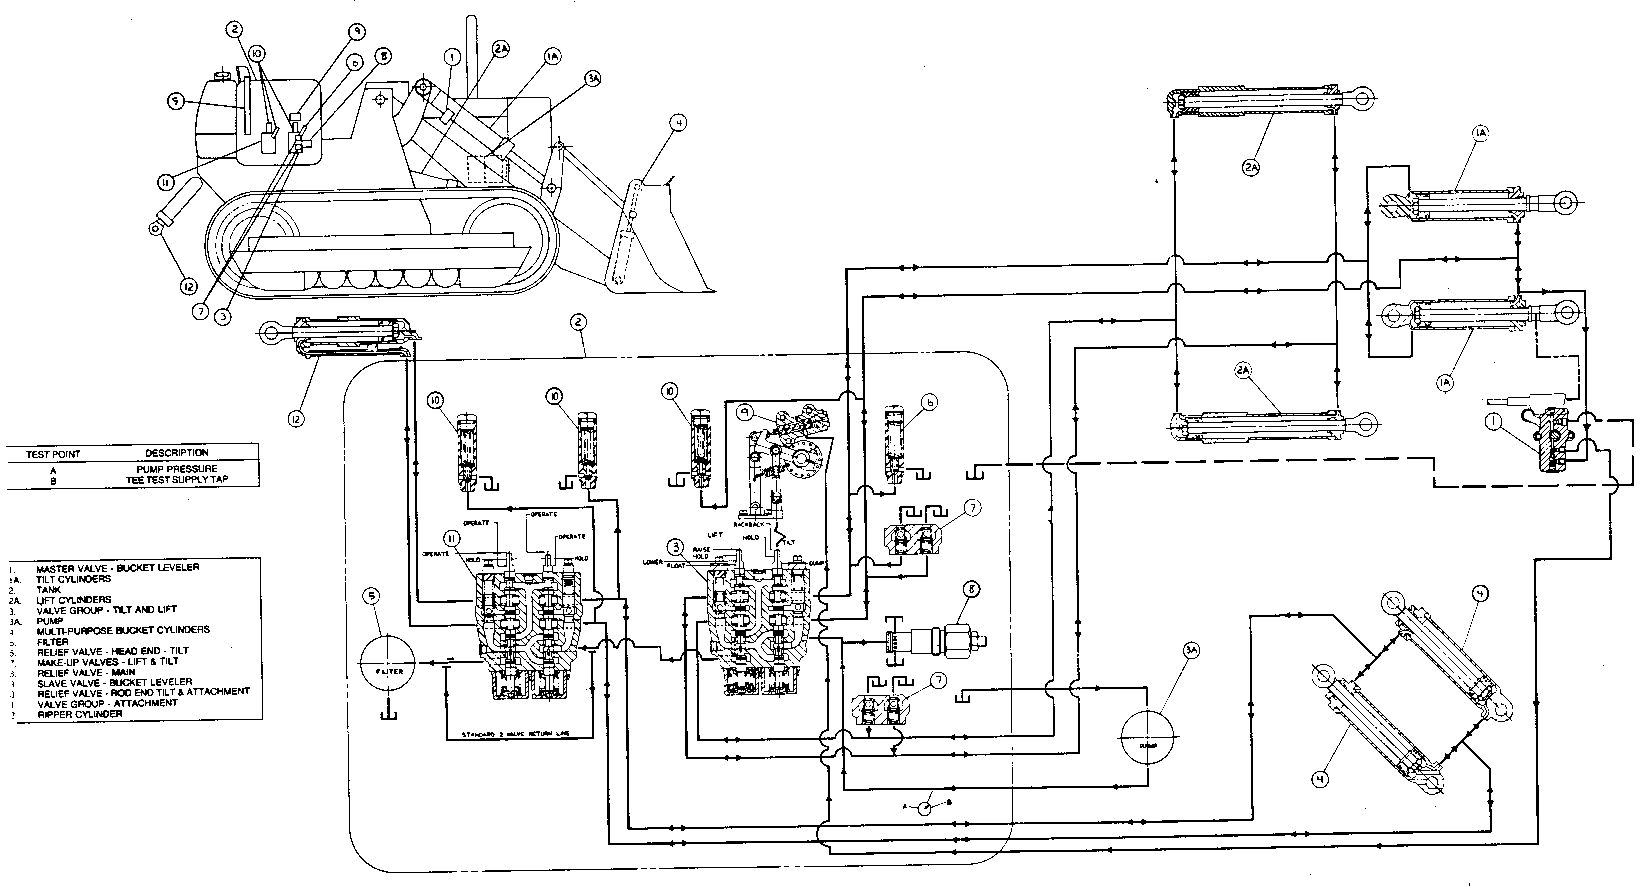 need hydrualic and electrical schematics for cat 941b ser ... caterpillar 3208 marine engine diagram